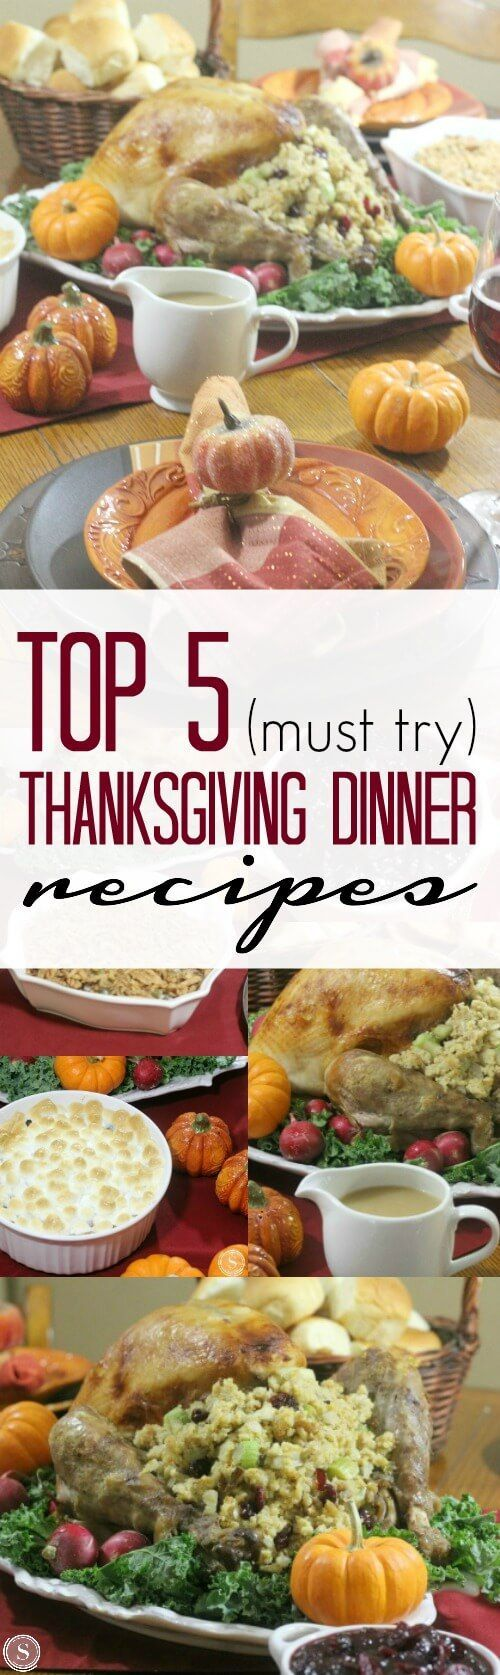 How to Make a Homemade Thanksgiving Turkey Dinner! Top 5 Thanksgiving Dinner and Side Dish Recipes for the Holidays!